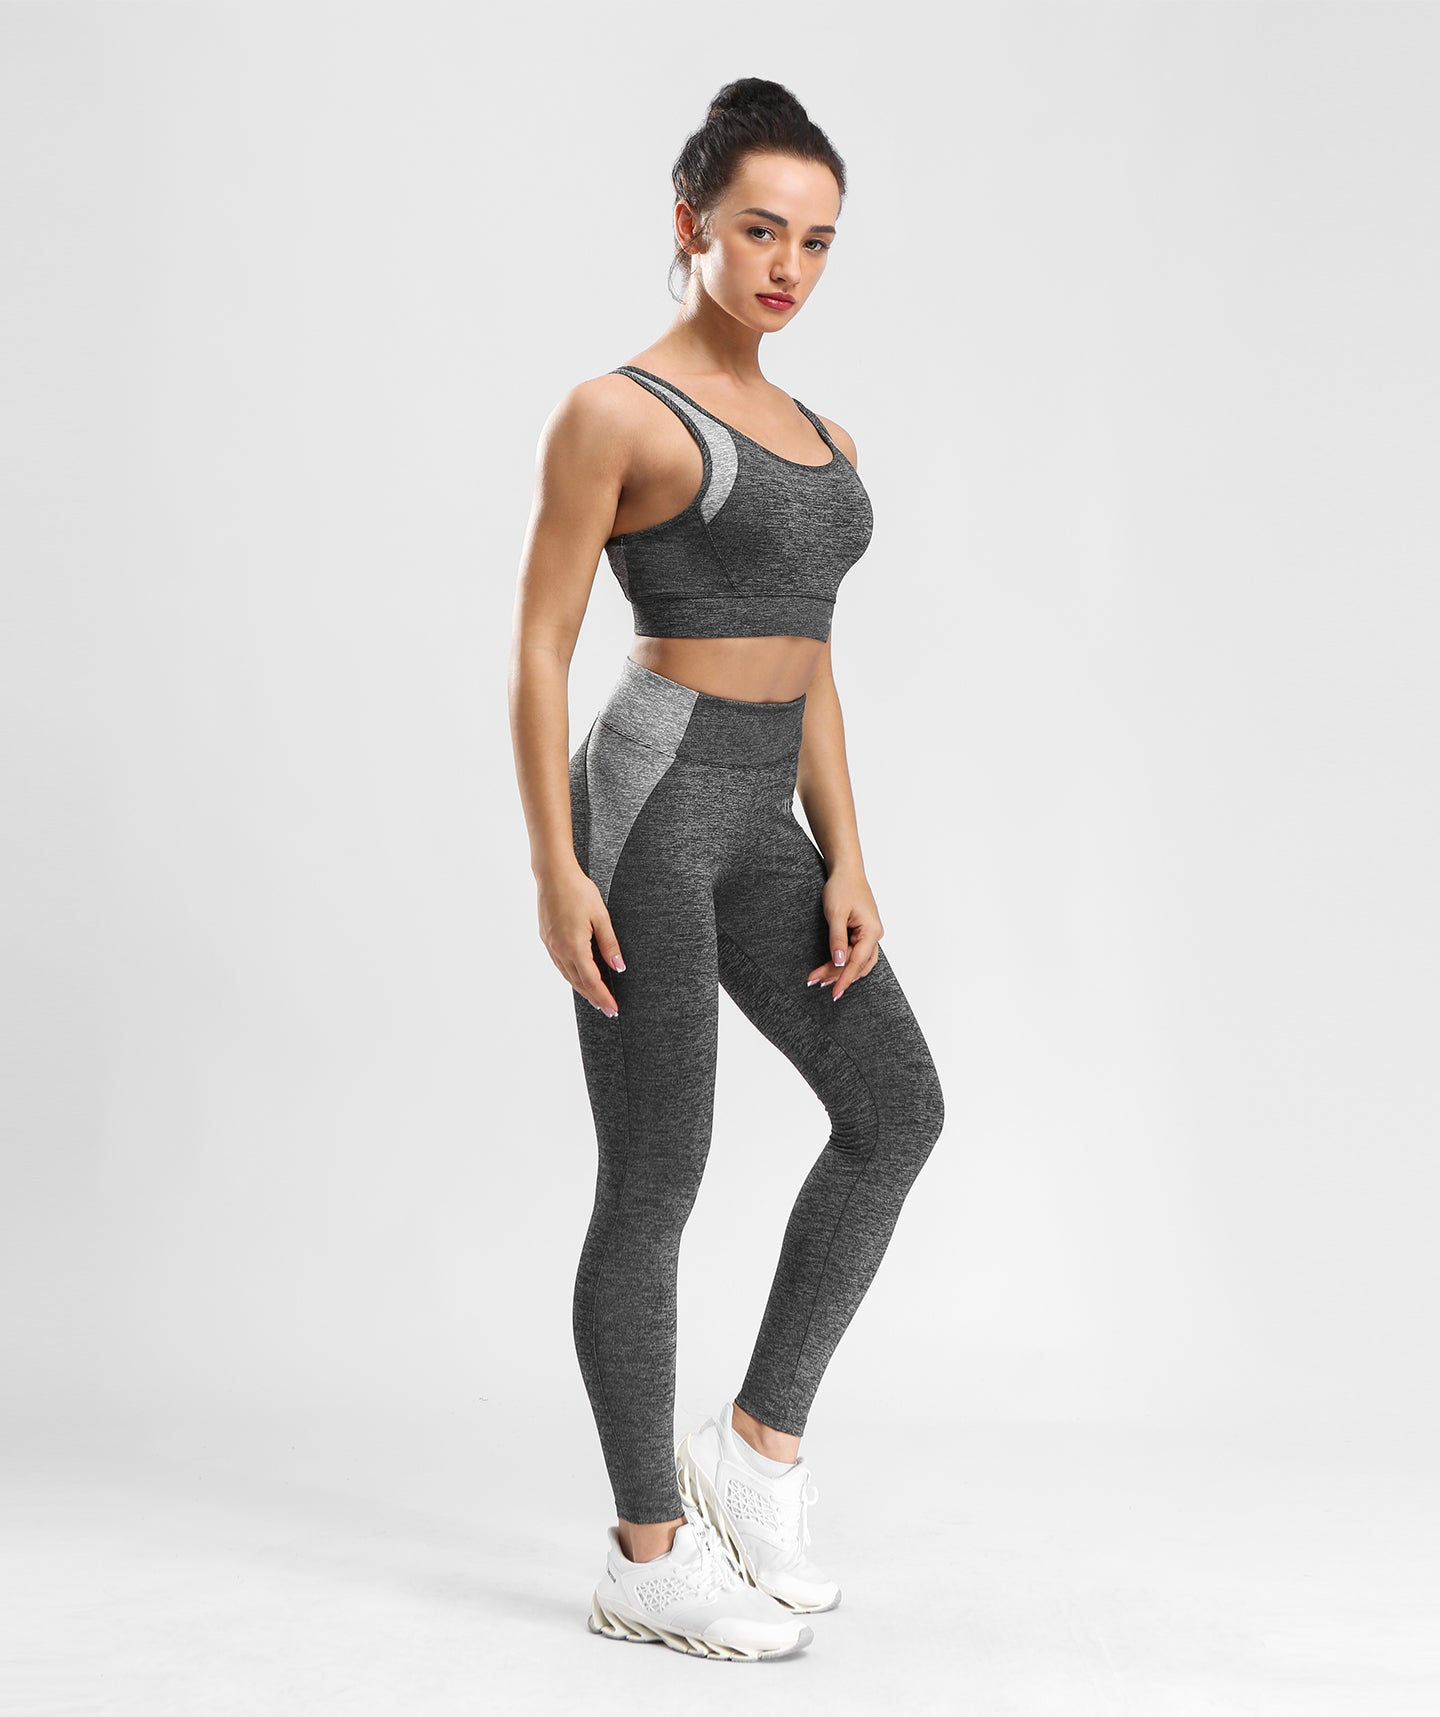 Inside Glamour Padded Comfort Sports Bra - Black